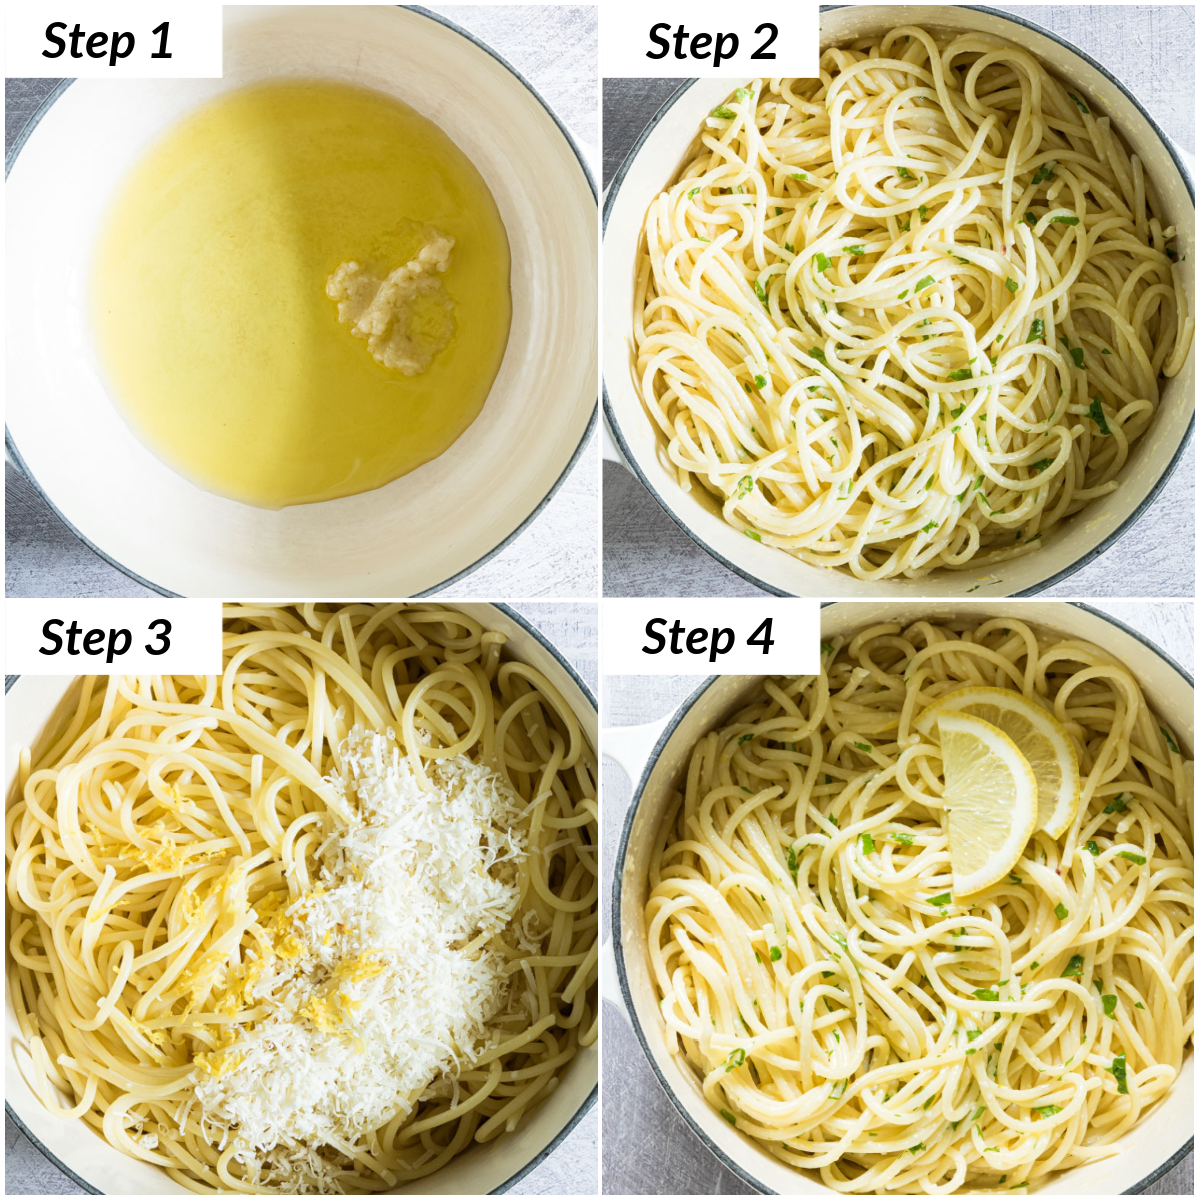 image collage showing the steps for making lemon pasta